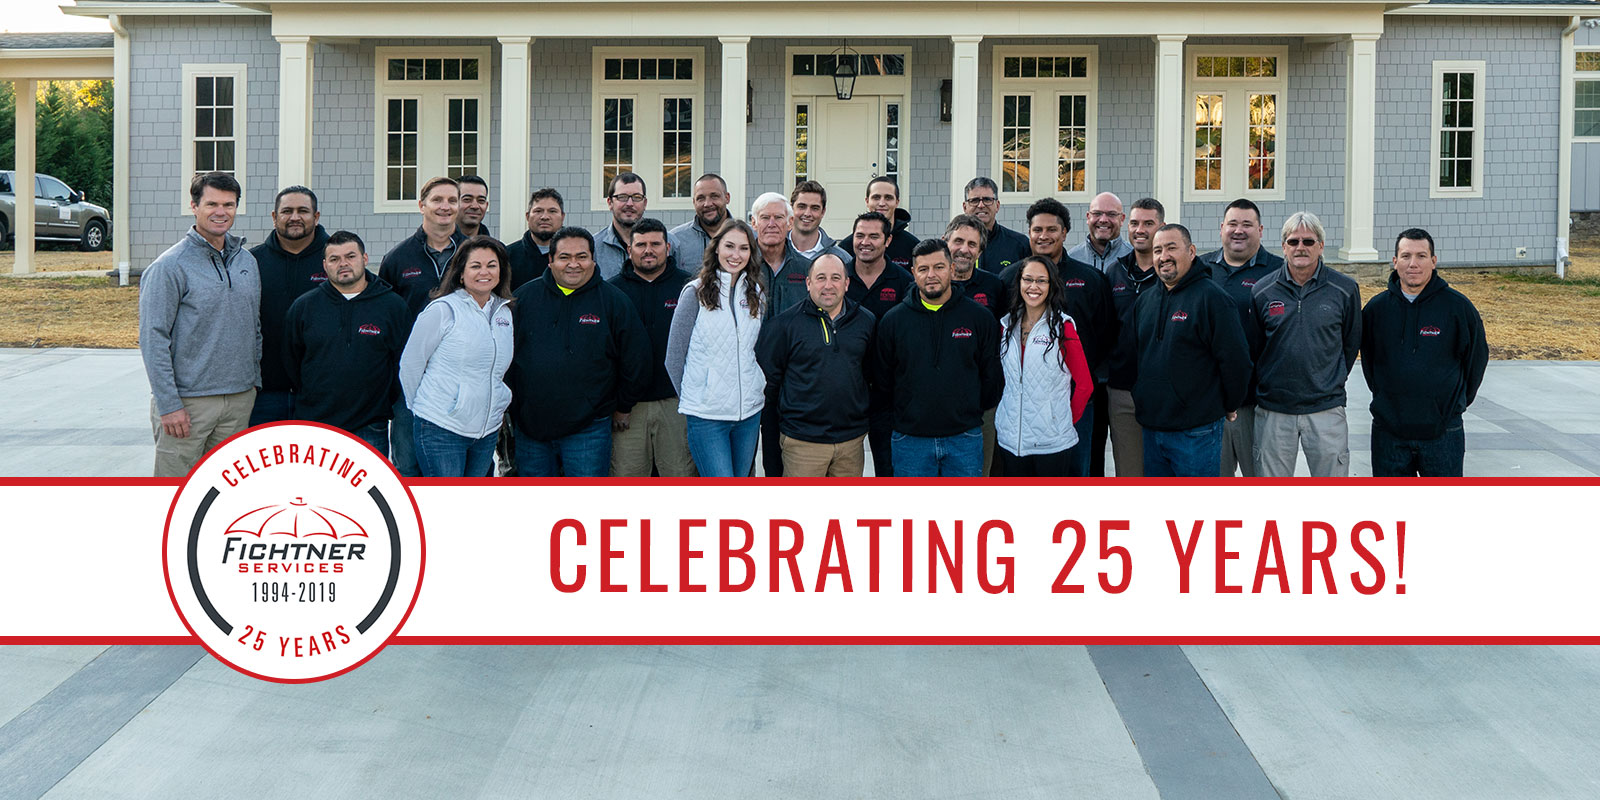 Reflections on the last 25 Years